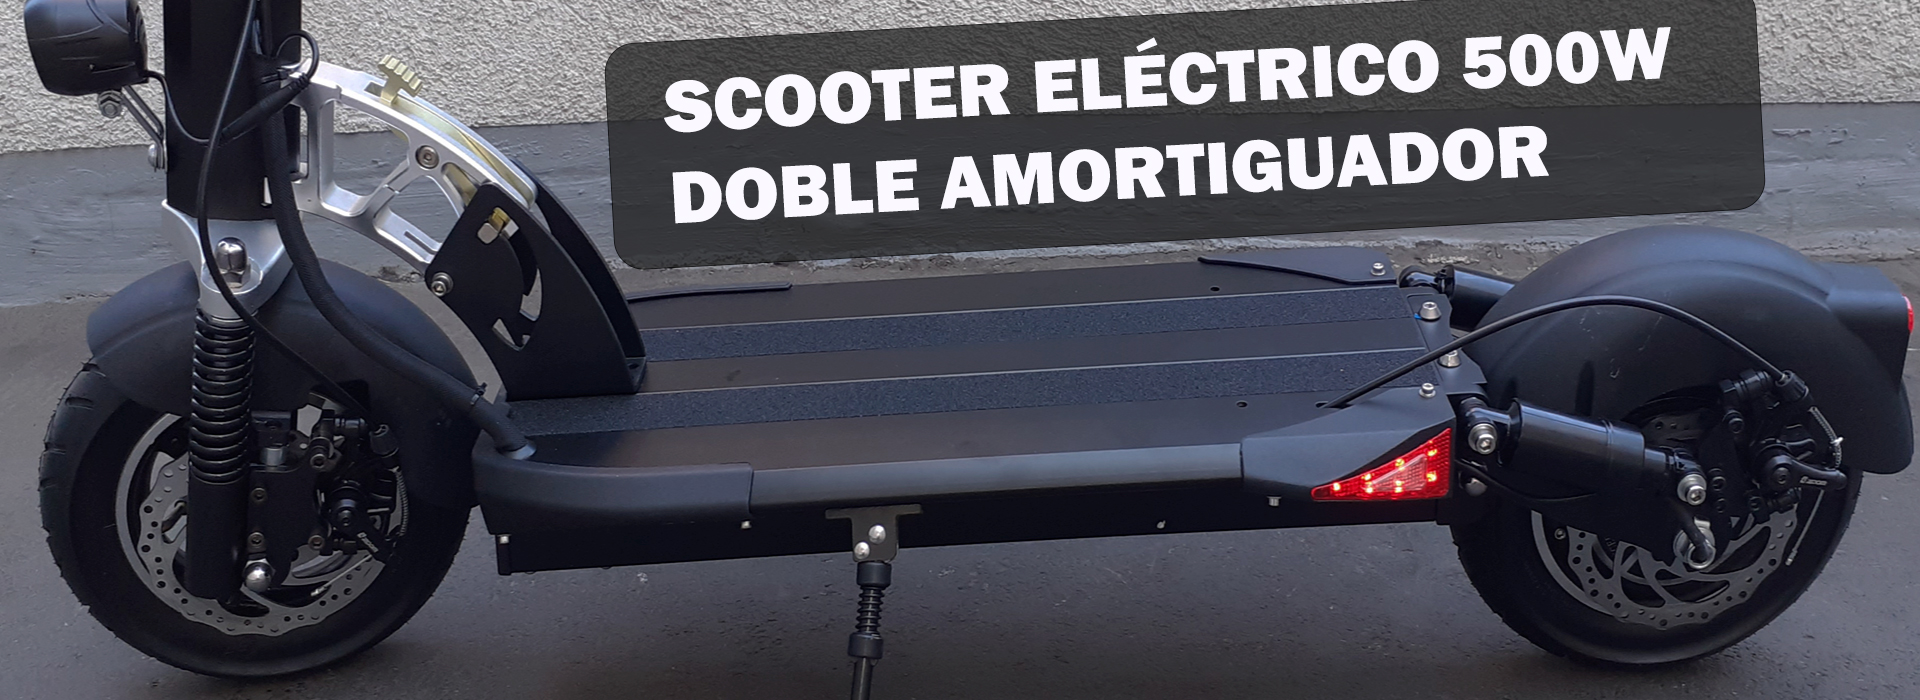 SCOOTERS ELÉCTRICOS 500W 10X 13 AMP